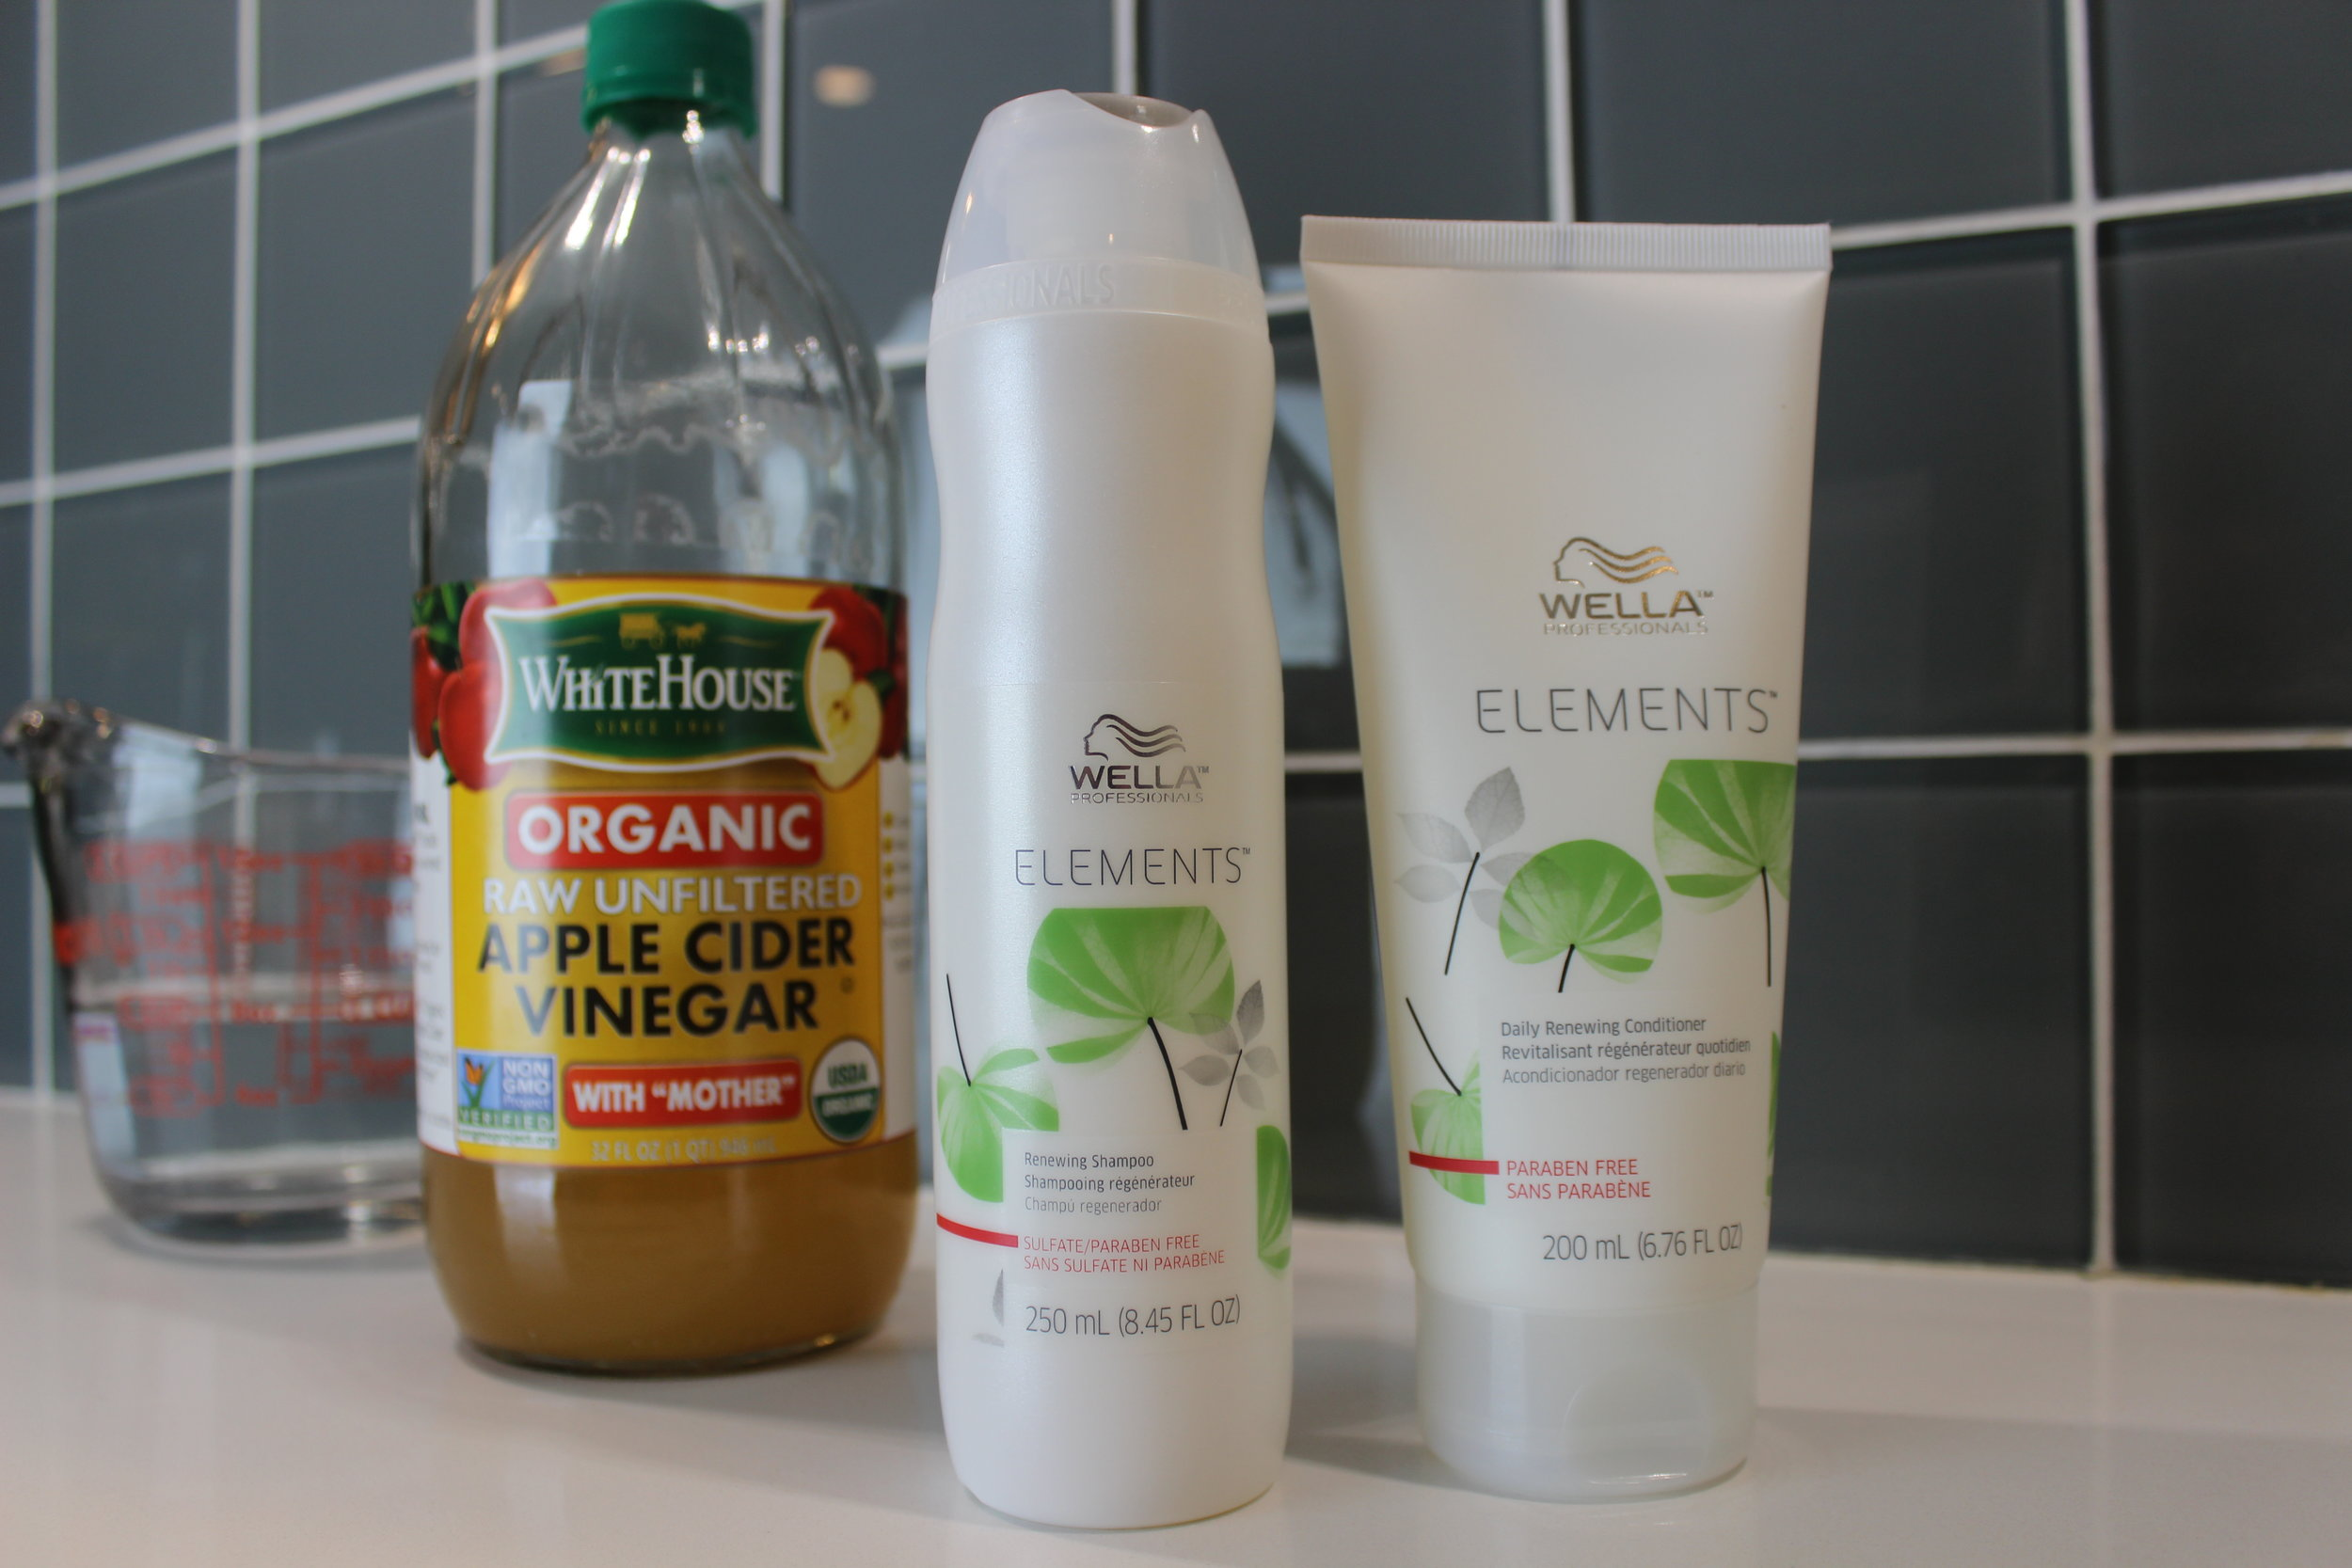 The Apple Cider Vinegar Rinse pairs perfectly with Wella Elements Shampoo and Conditioner